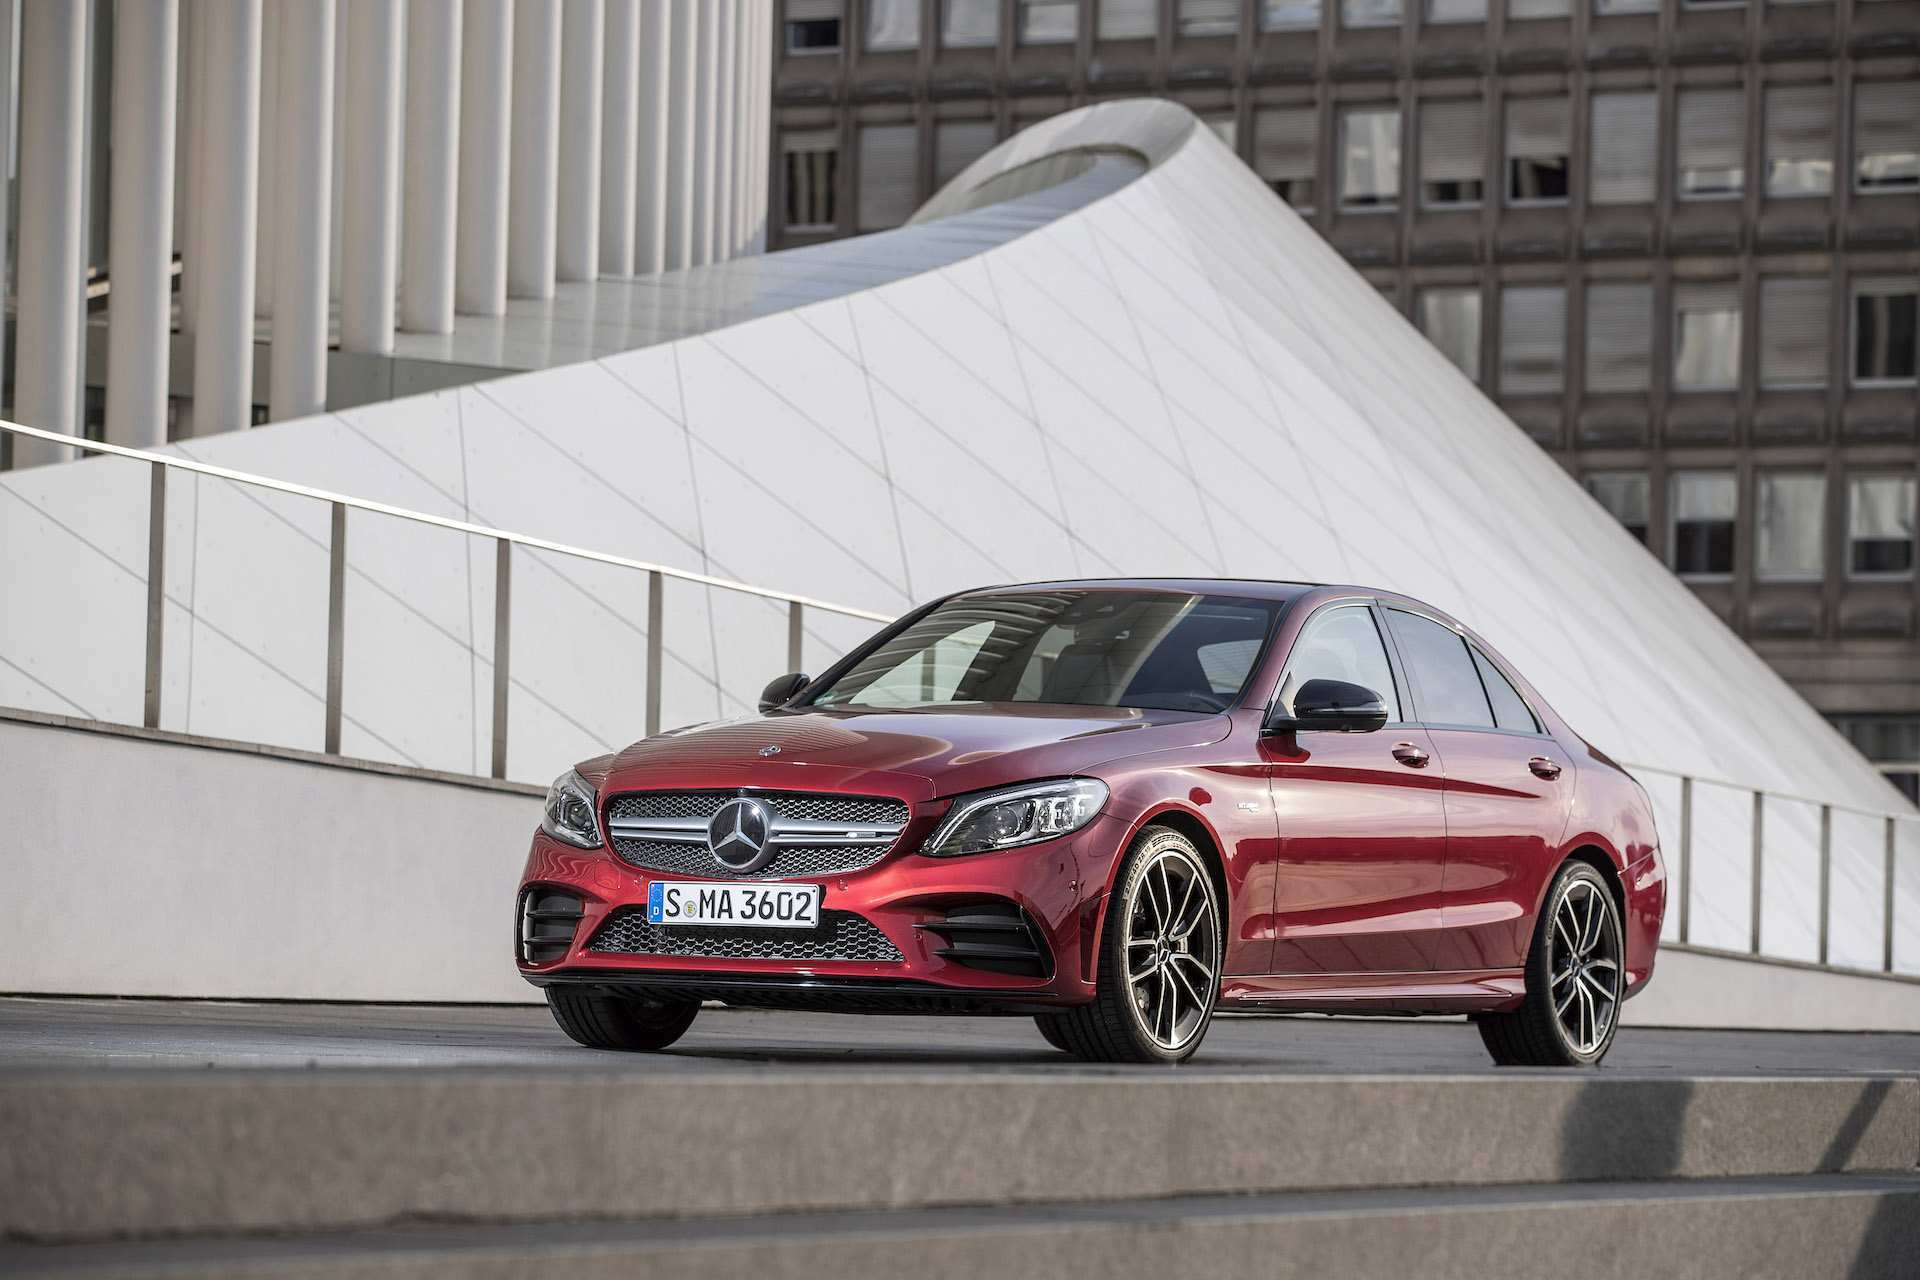 35 New Best Mercedes C Class Hybrid 2019 Review And Price Exterior and Interior by Best Mercedes C Class Hybrid 2019 Review And Price